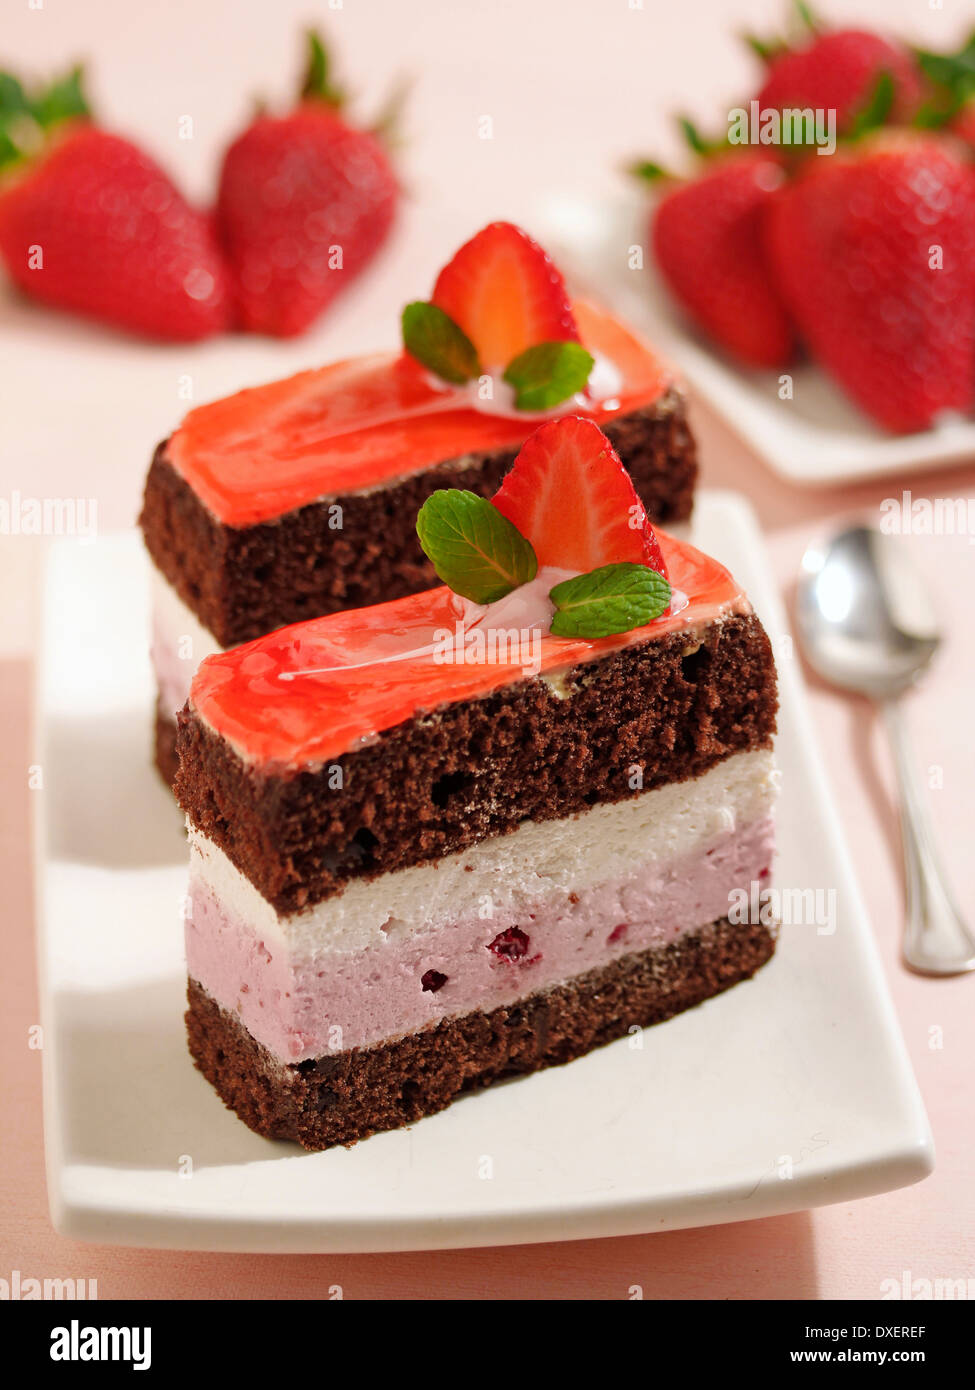 Sponge cake with cream and strawberries. Recipe available. Stock Photo